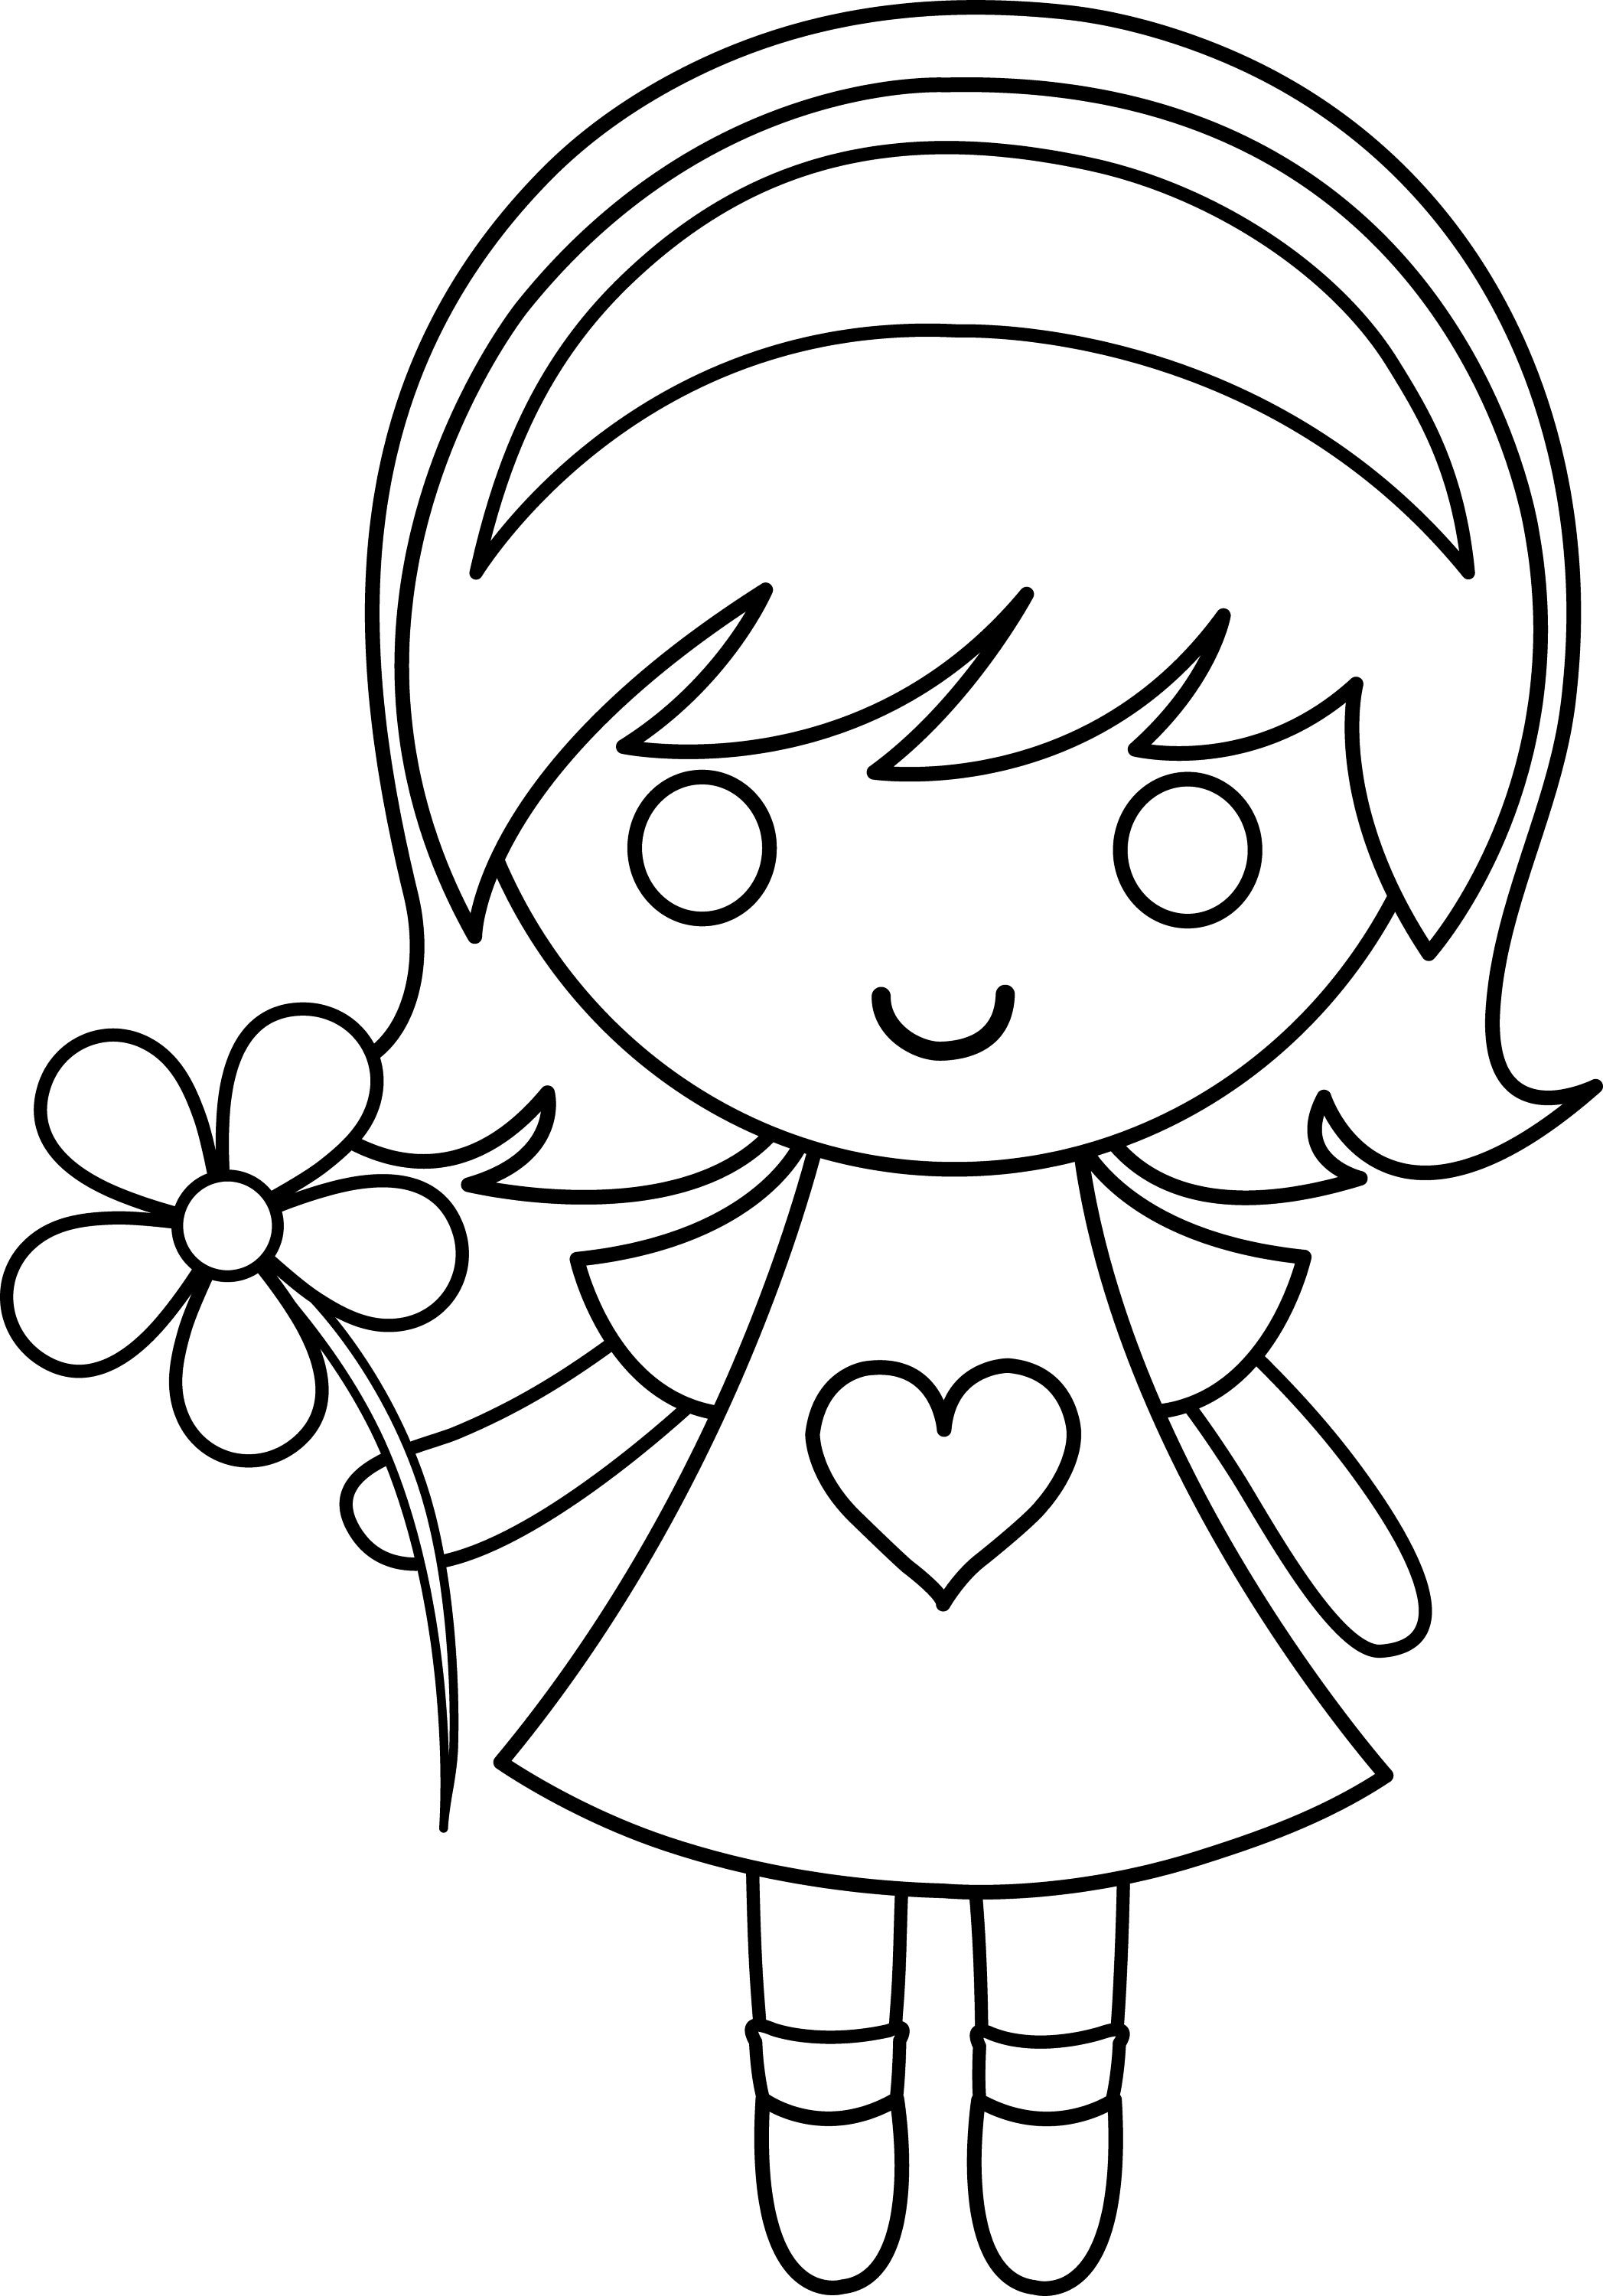 Daisy Girl Colorable Line Art